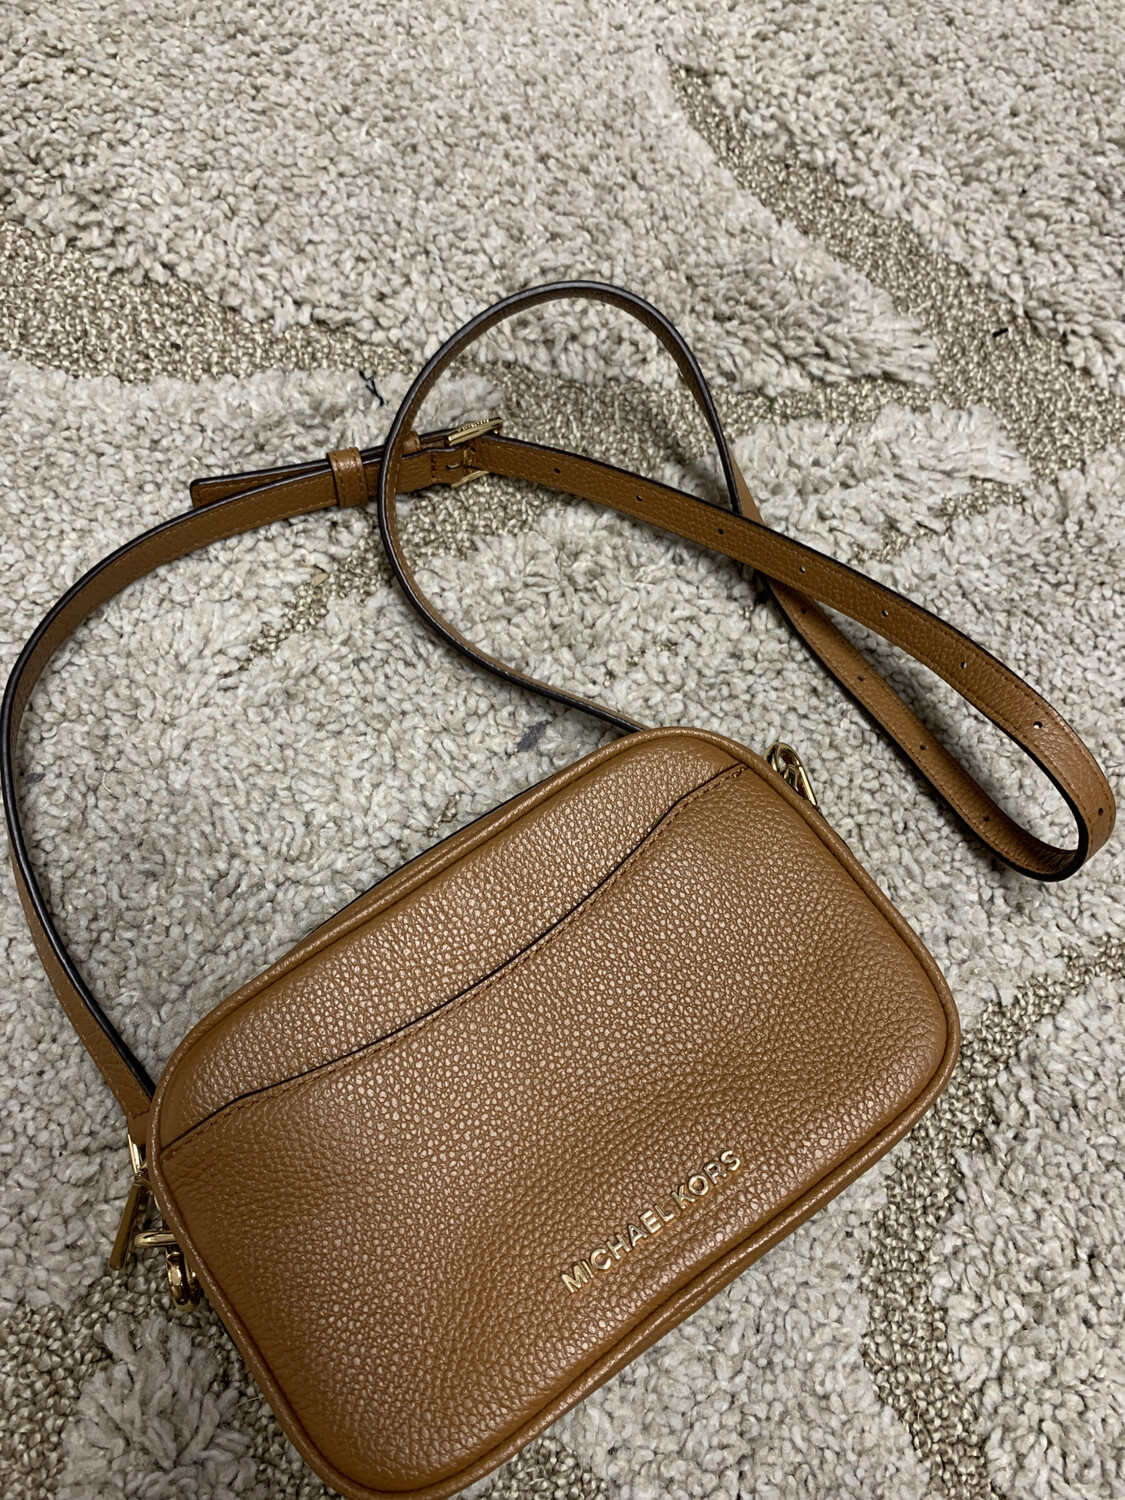 Michael Kors Brown Pebbled Leather Crossbody